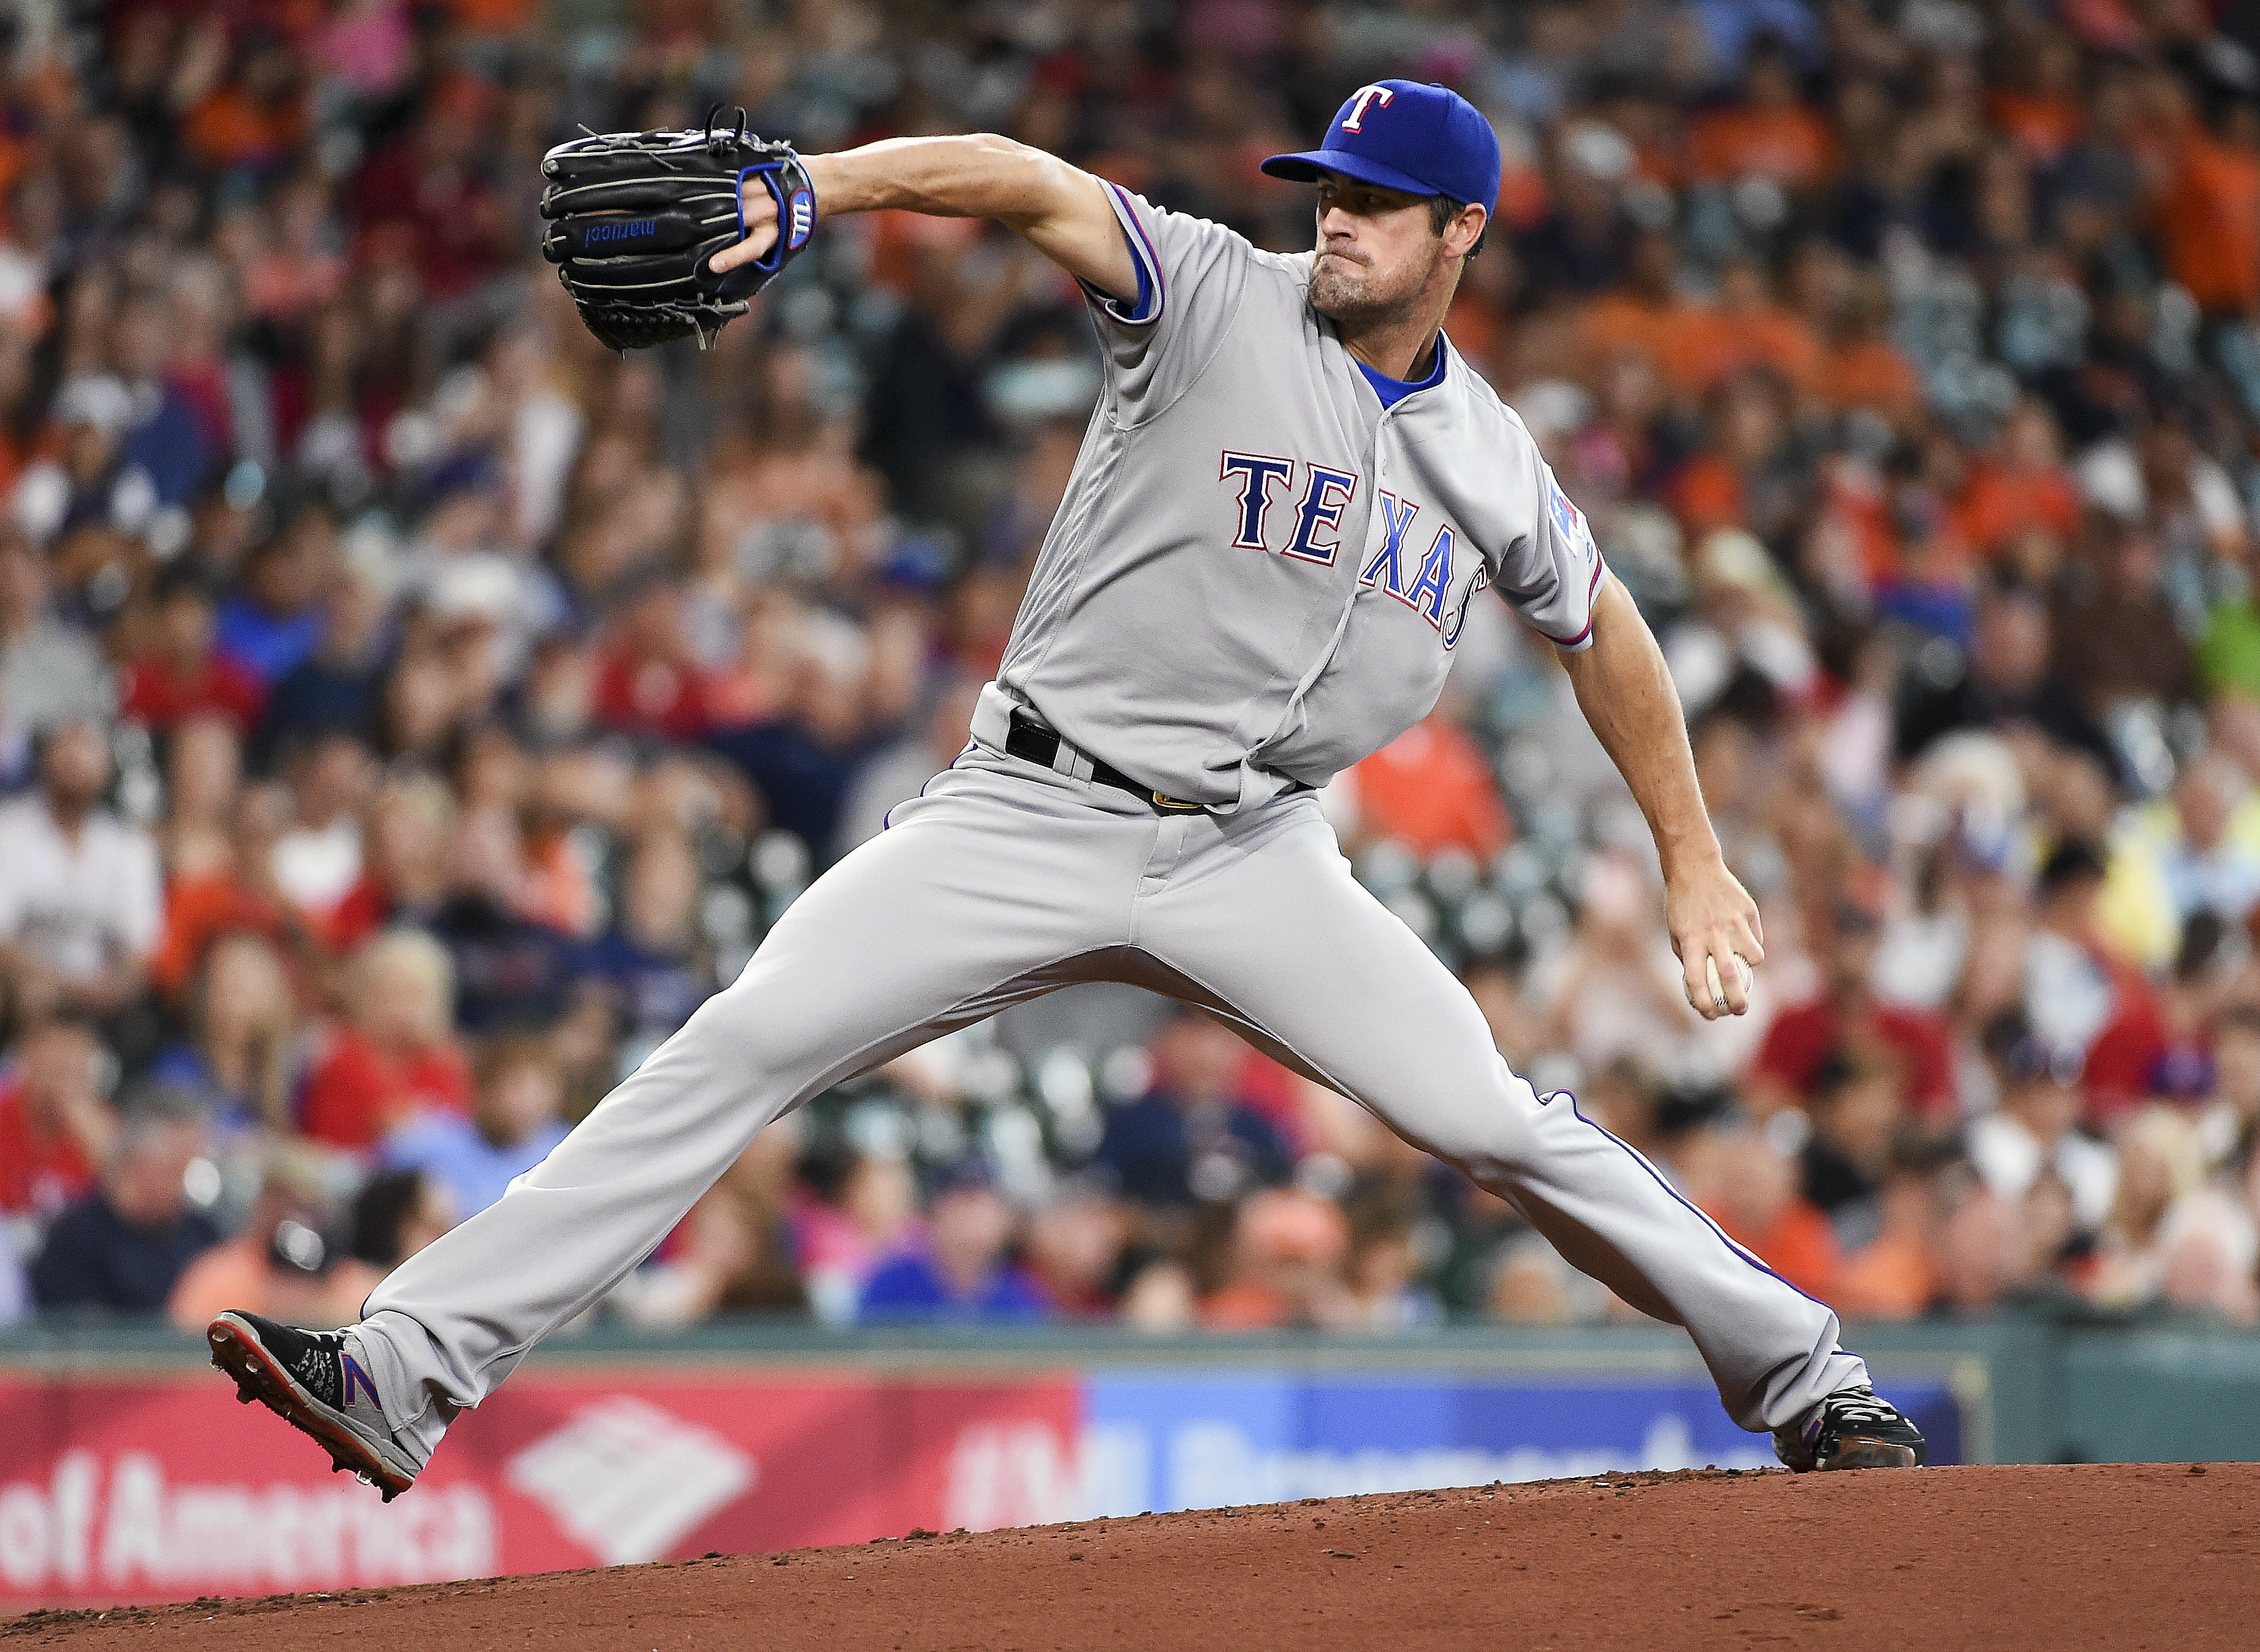 Texas Rangers starting pitcher Cole Hamels delivers during the first inning of a baseball game against the Houston Astros, Sunday, May 22, 2016, in Houston. (AP Photo/Eric Christian Smith)